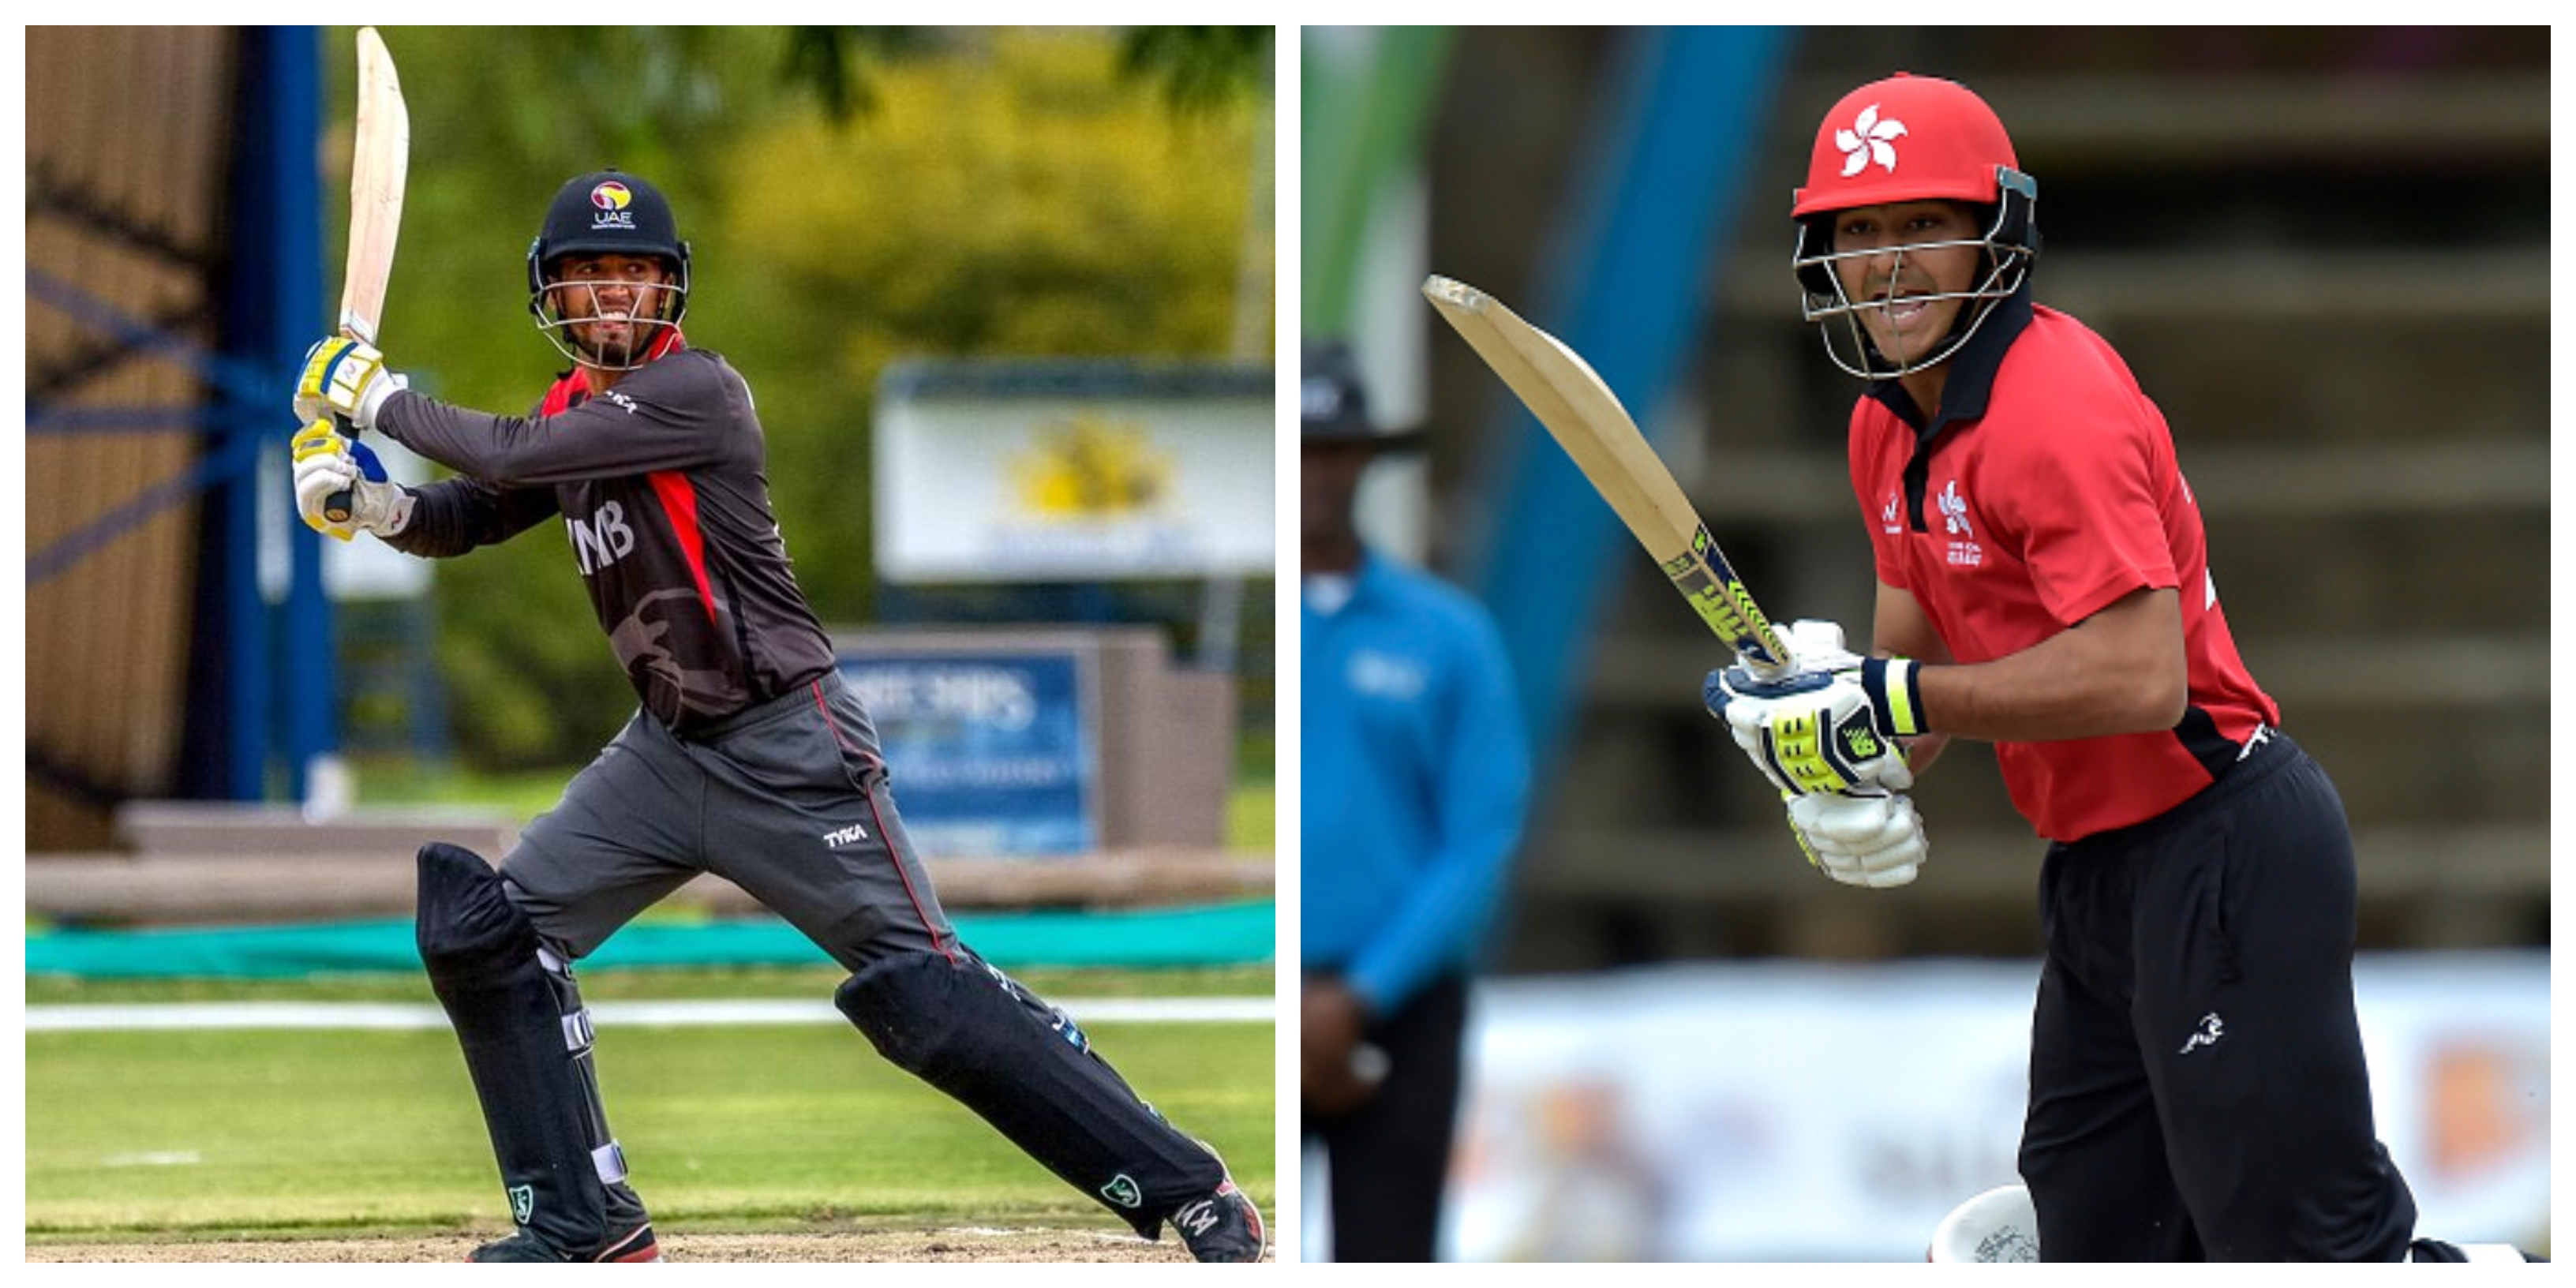 Rohan Mustafa for UAE and Anshuman Rath for Hong Kong played match winning knocks.